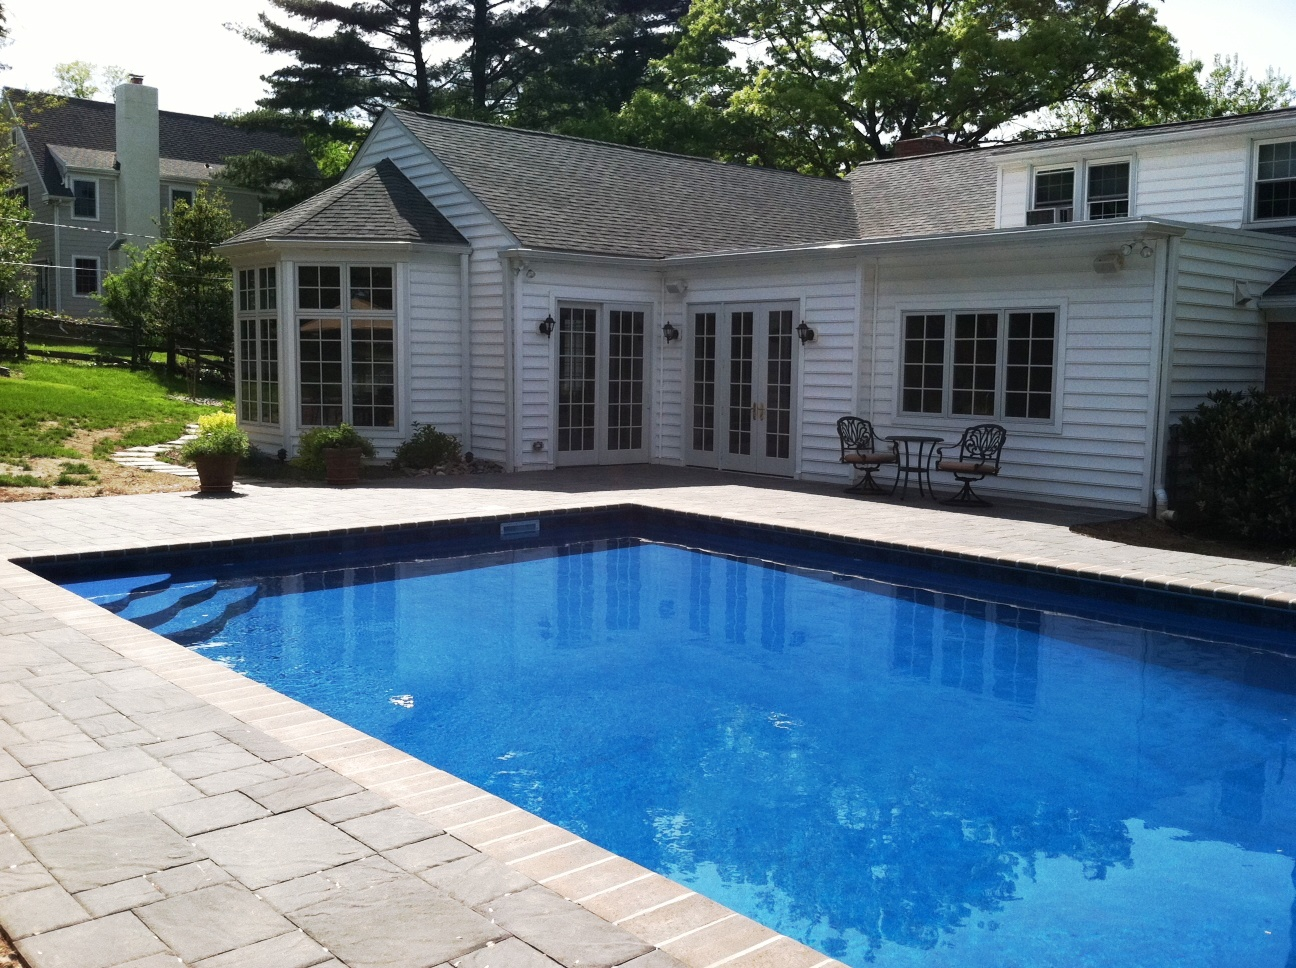 After Concrete Pool With New Retrofit Liner Freeform Step Bull Nose Paver Coping And Deck